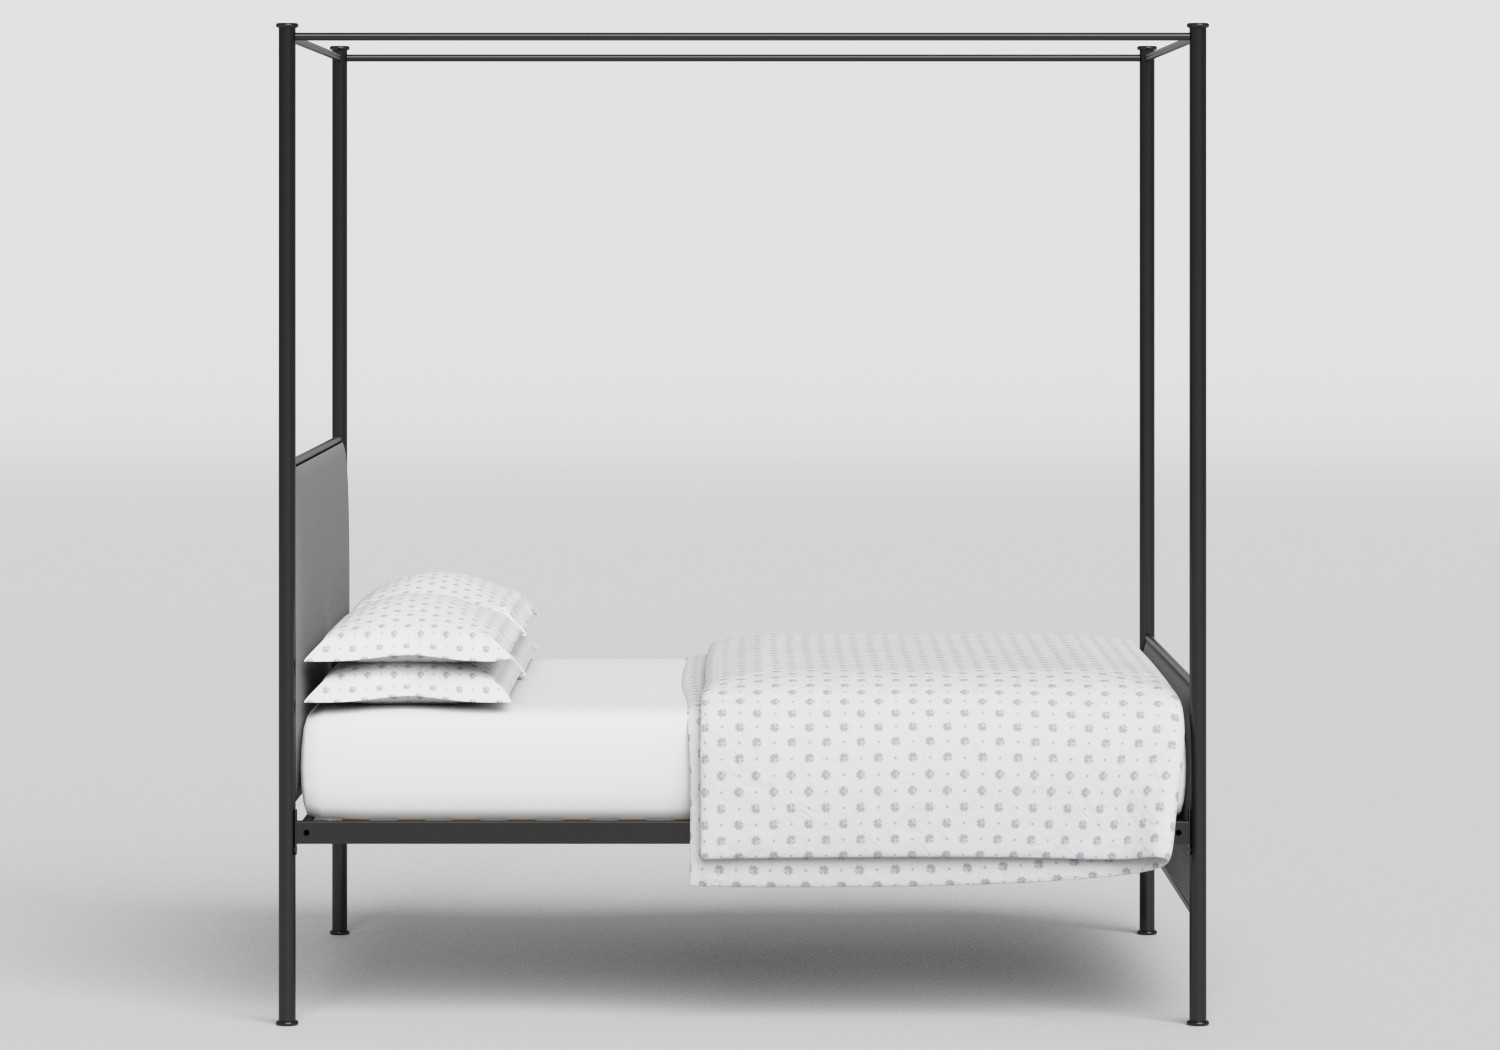 Reims upholstered four poster iron bed in Black